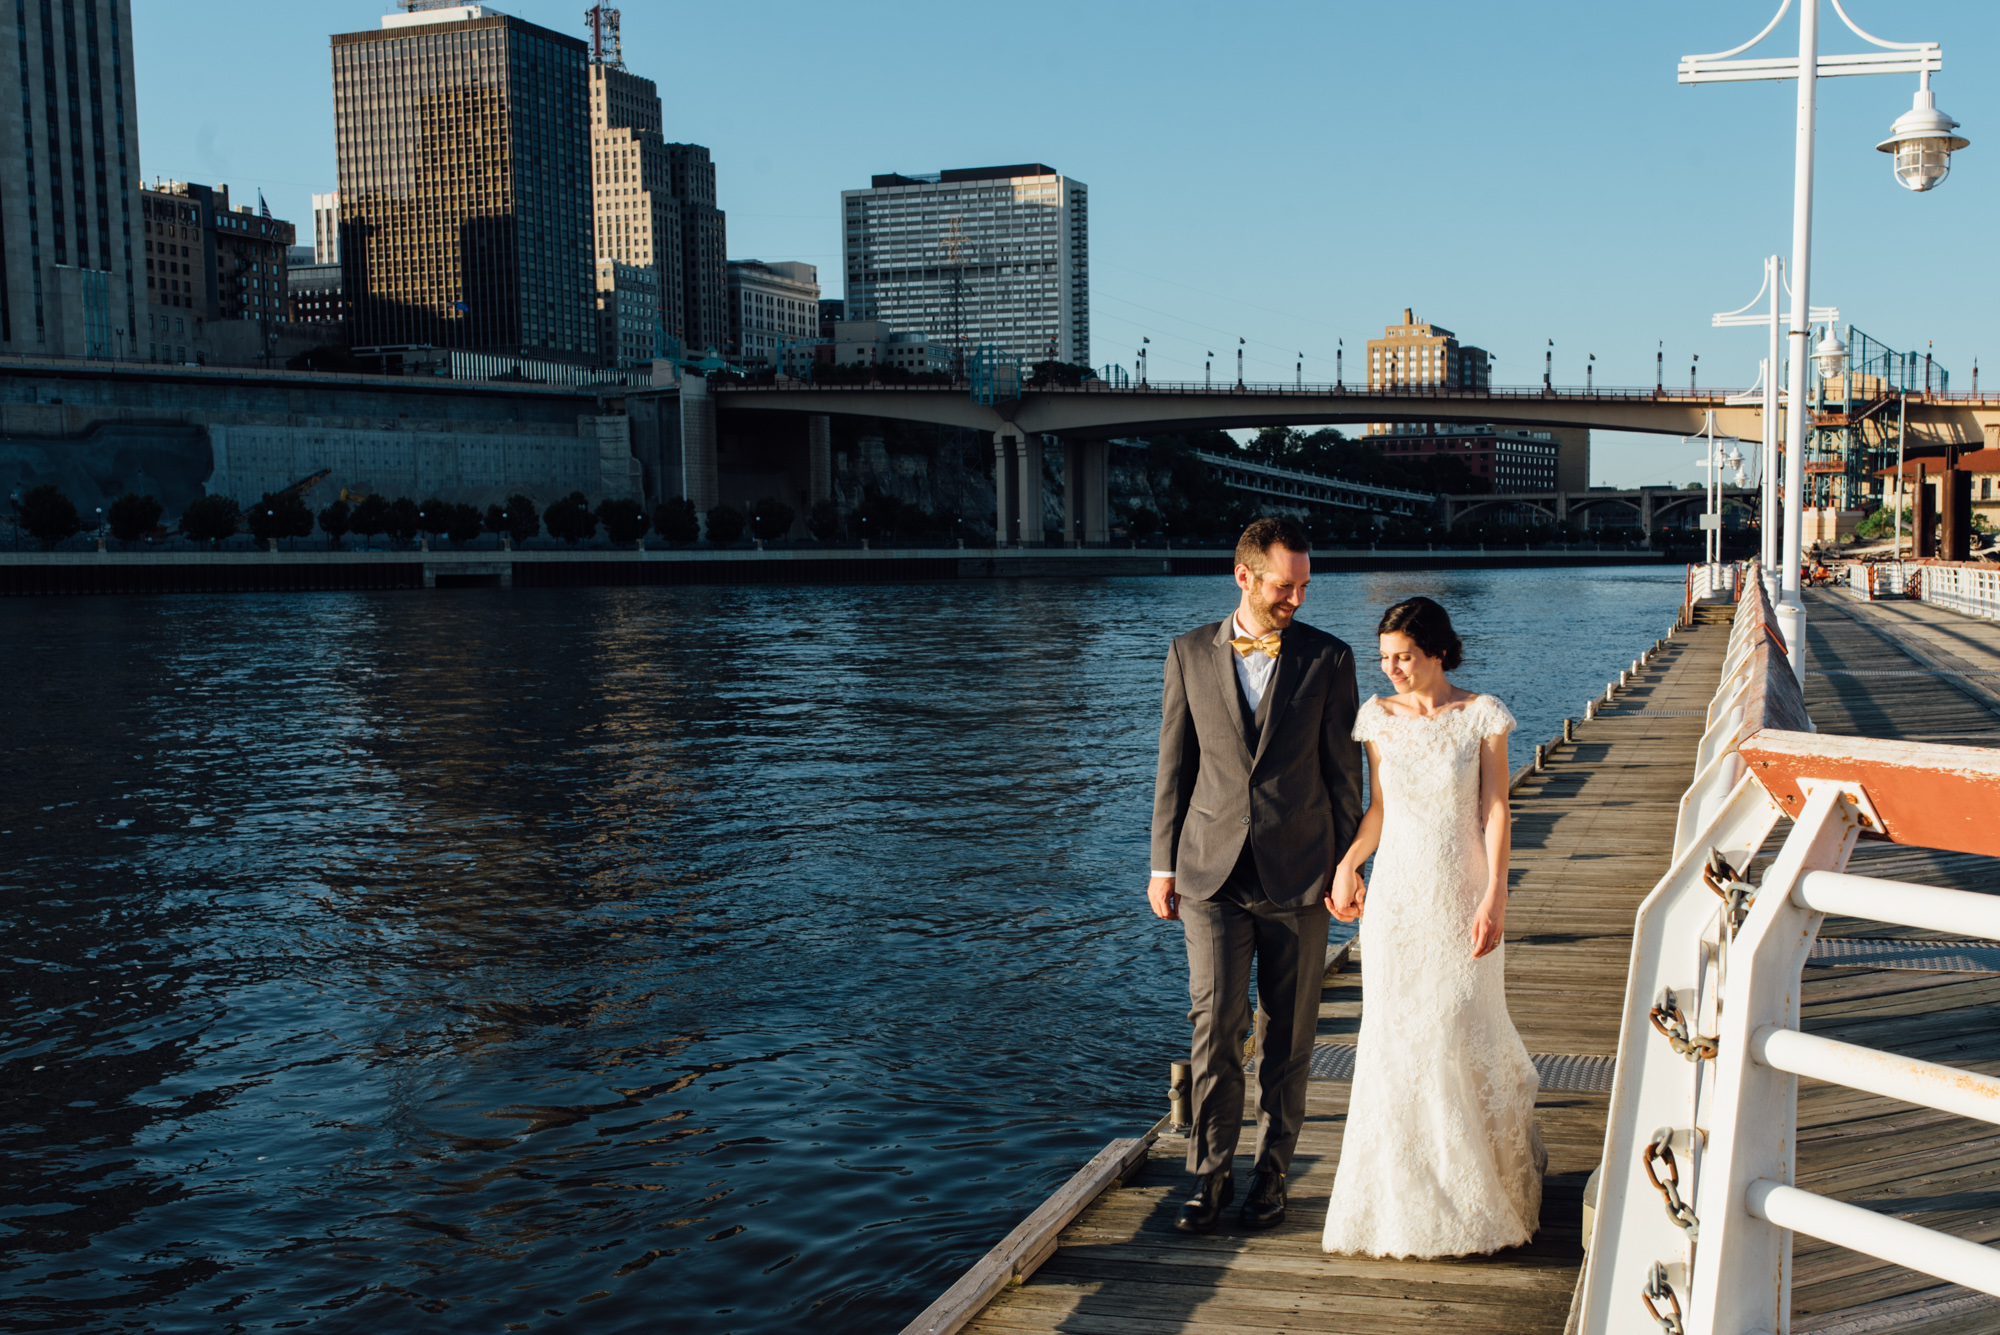 harriet-island-wedding-photographer-1-39.jpg